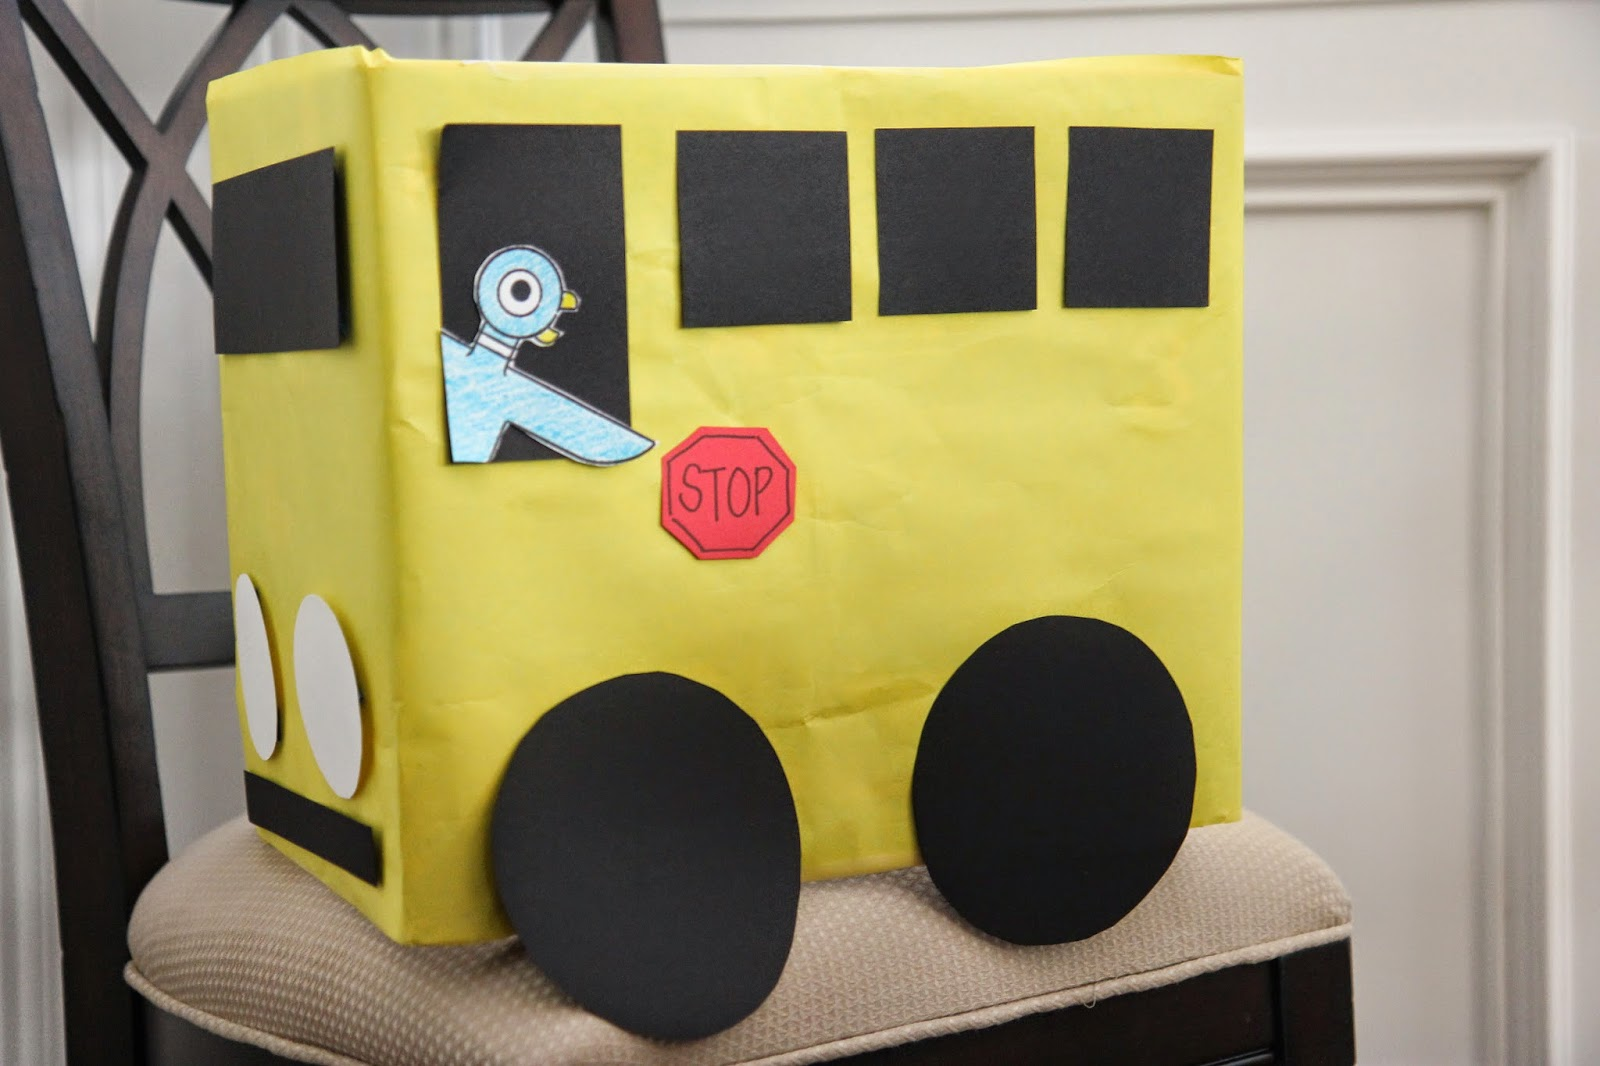 Cardboard Crafts For Toddlers The Cardboard Box Bus Craft